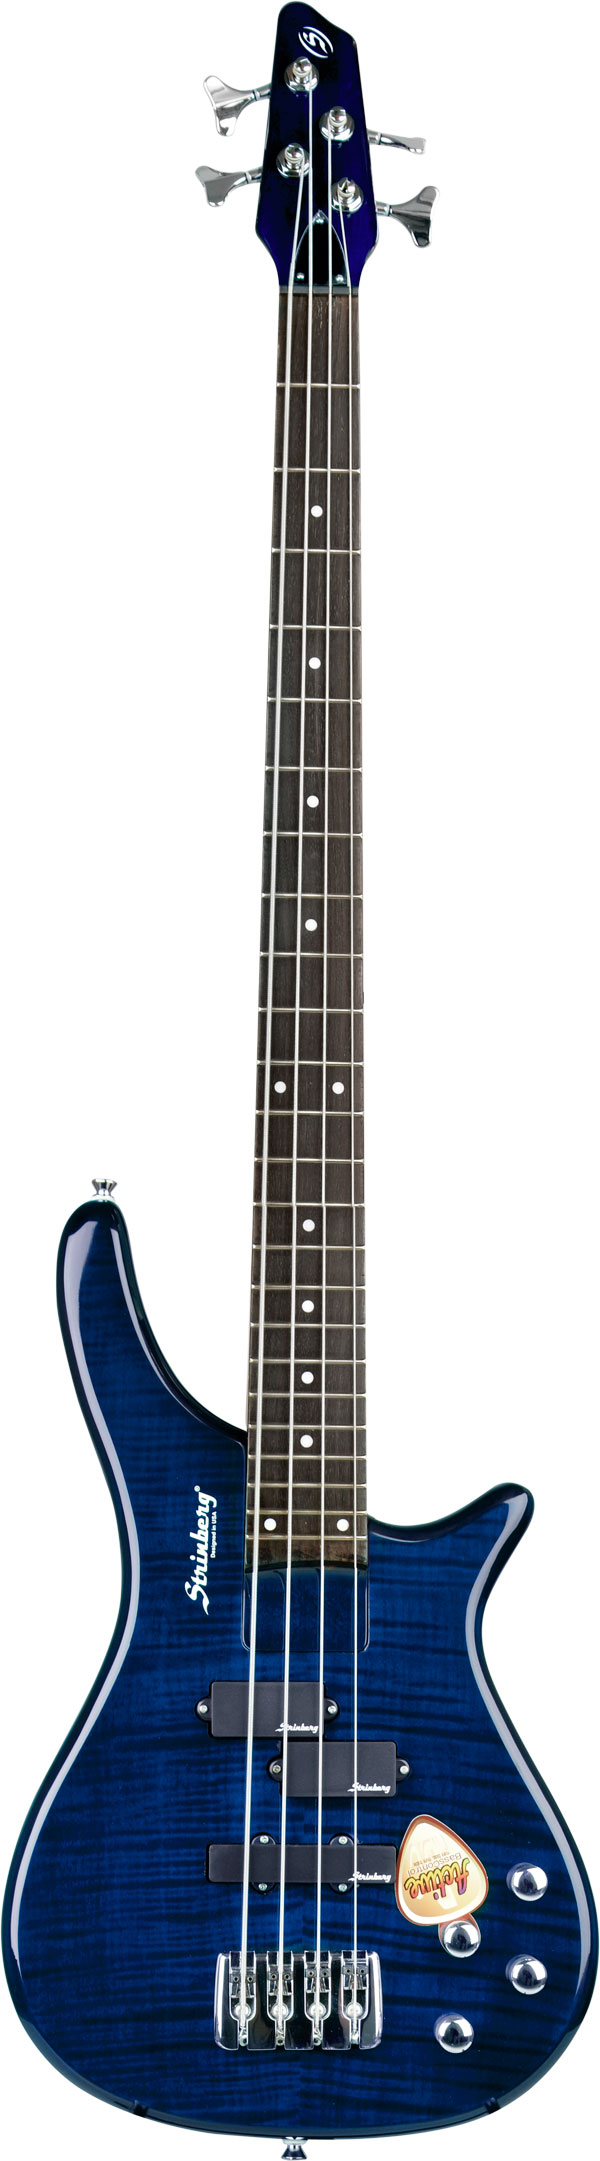 Strinberg El Bass Trans Blue